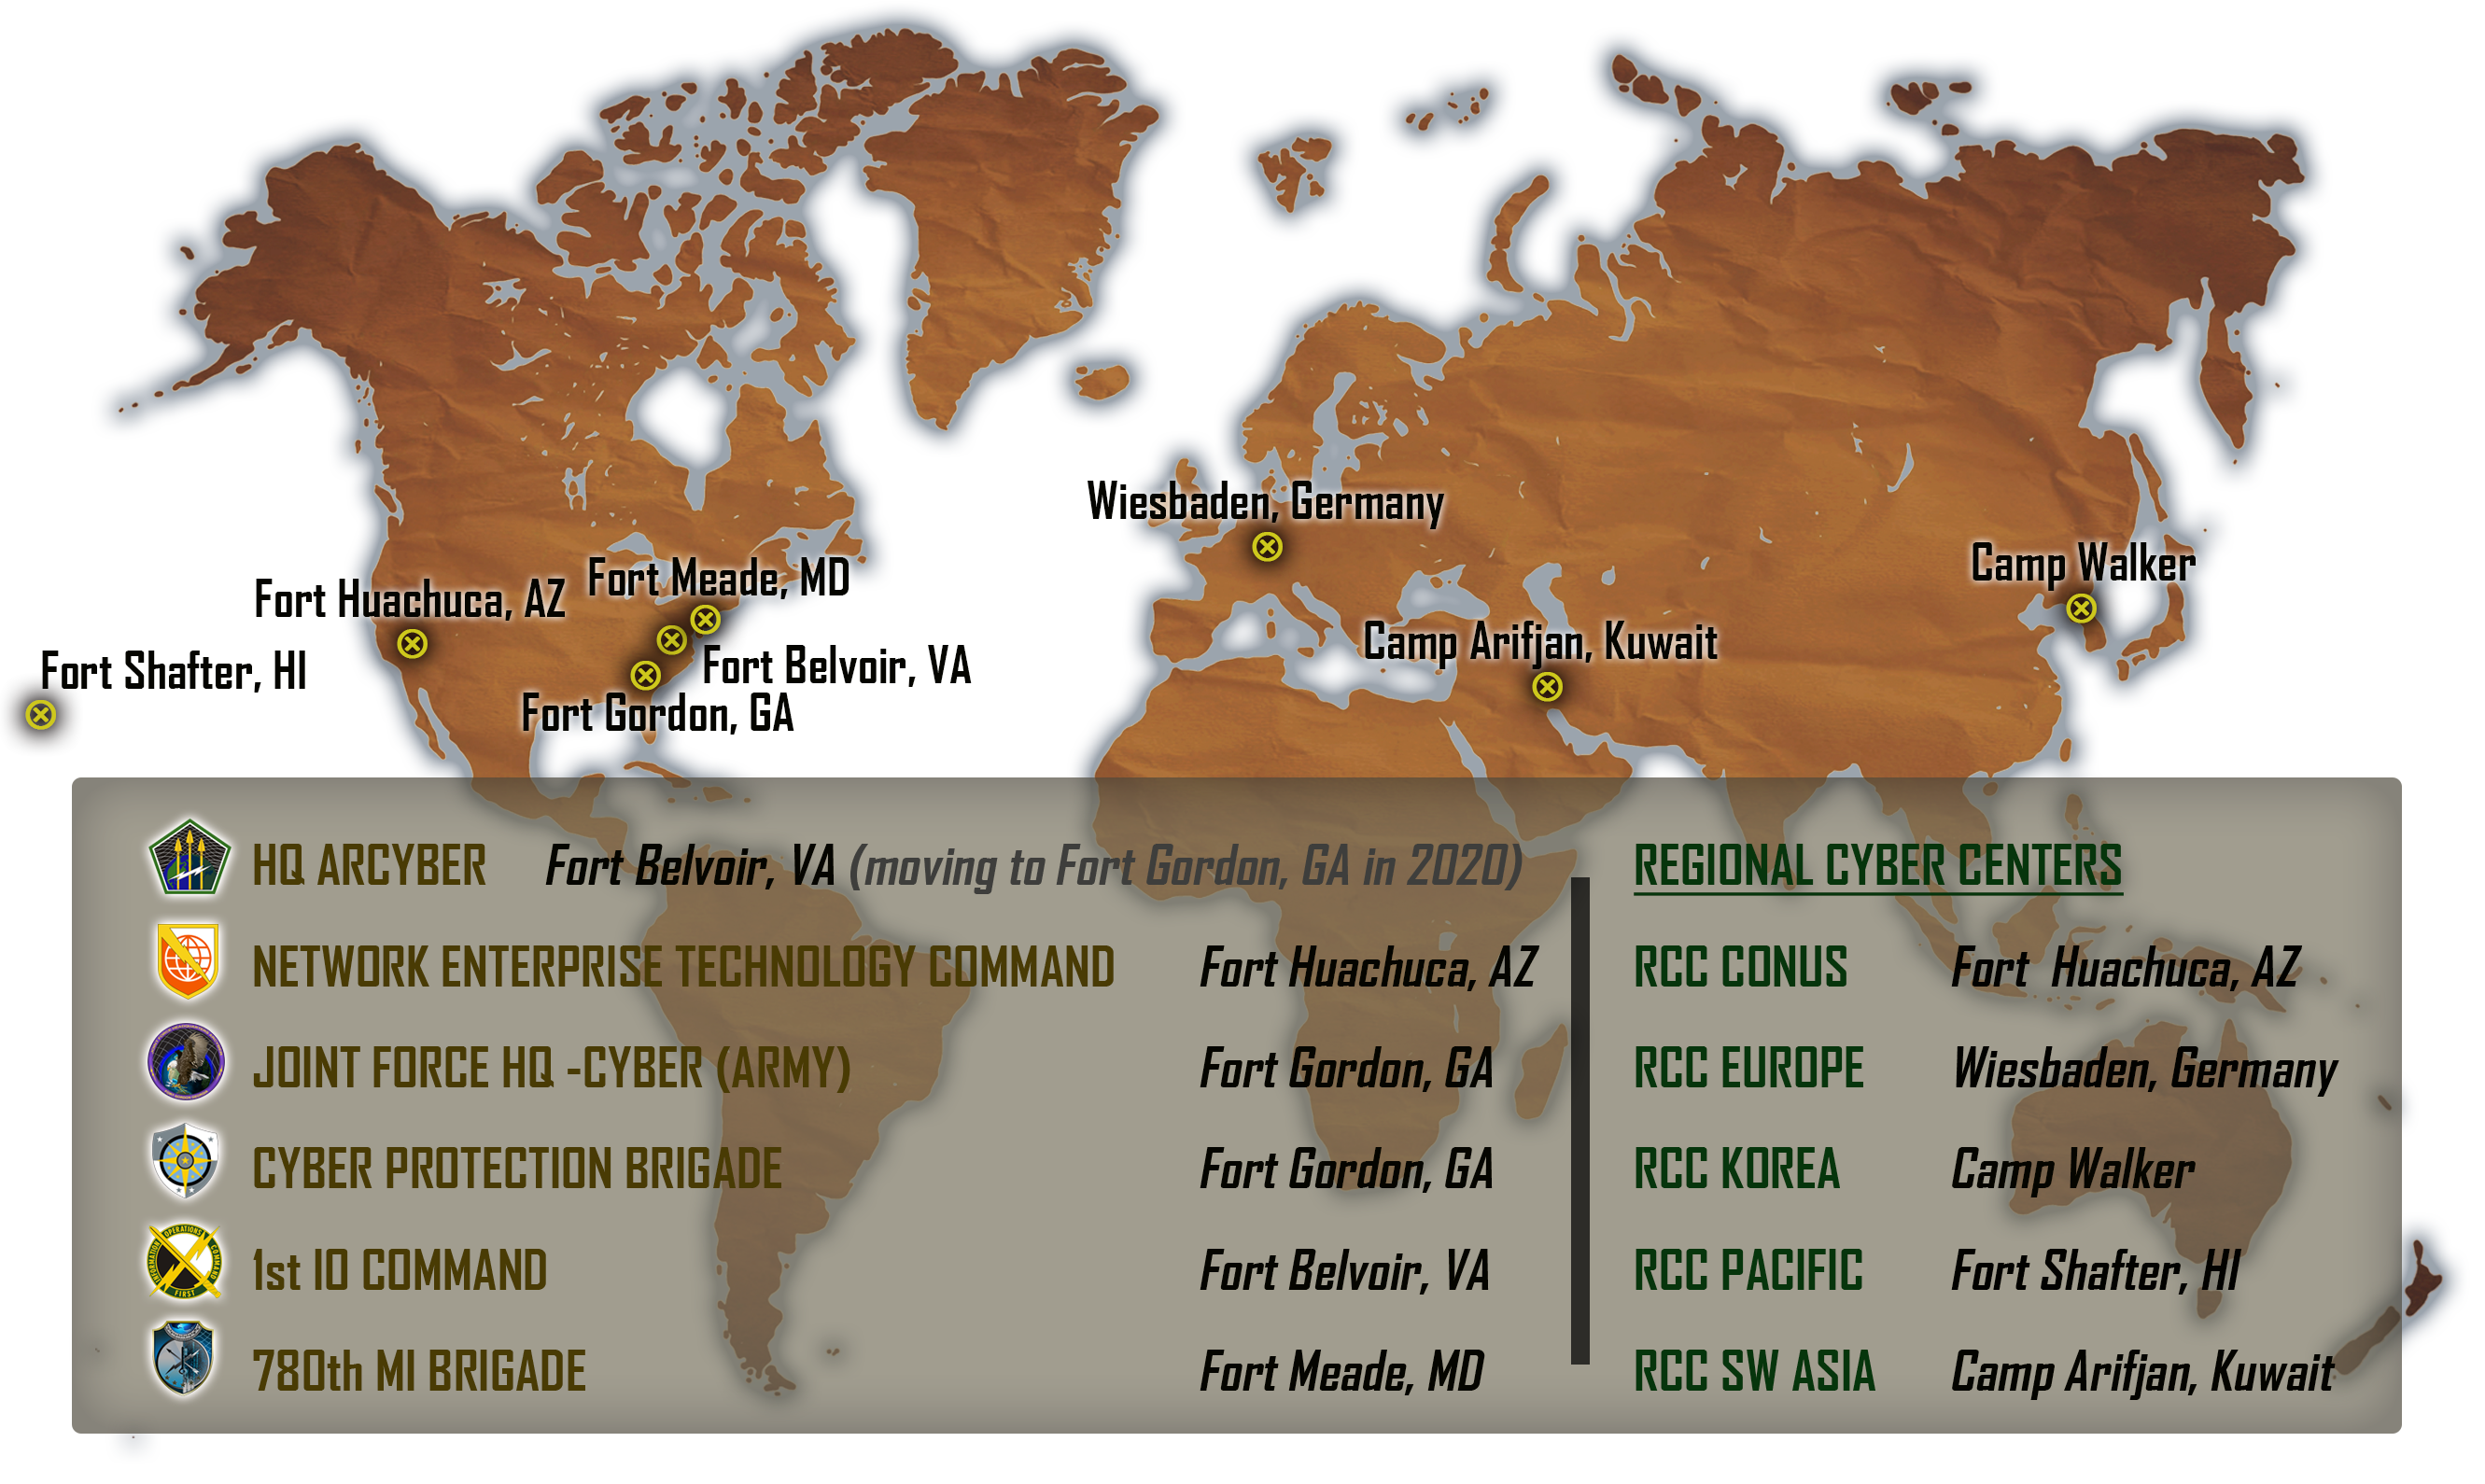 ARMY CYBER FACT SHEET: Army Cyber Command Worldwide